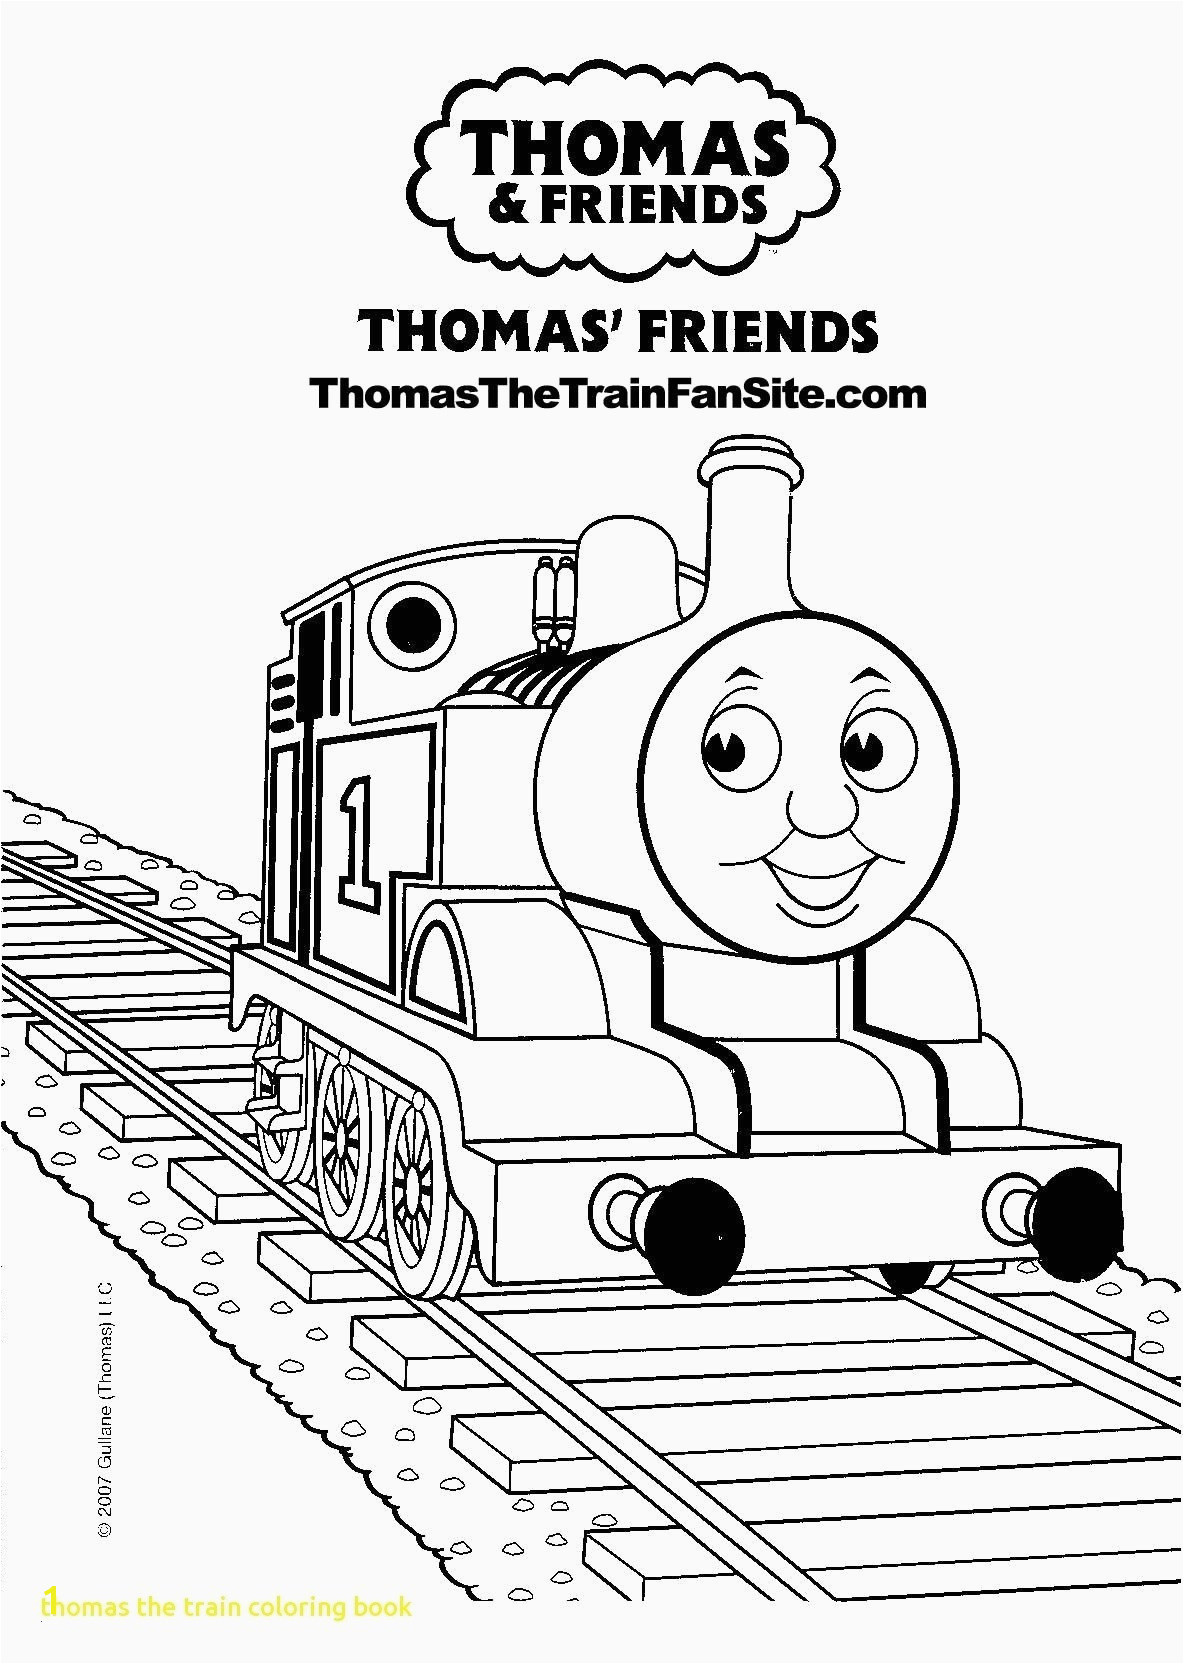 Printable Train Coloring Pages Beautiful Coloring Page Train Coloring Page Train New Cool Printable Cds